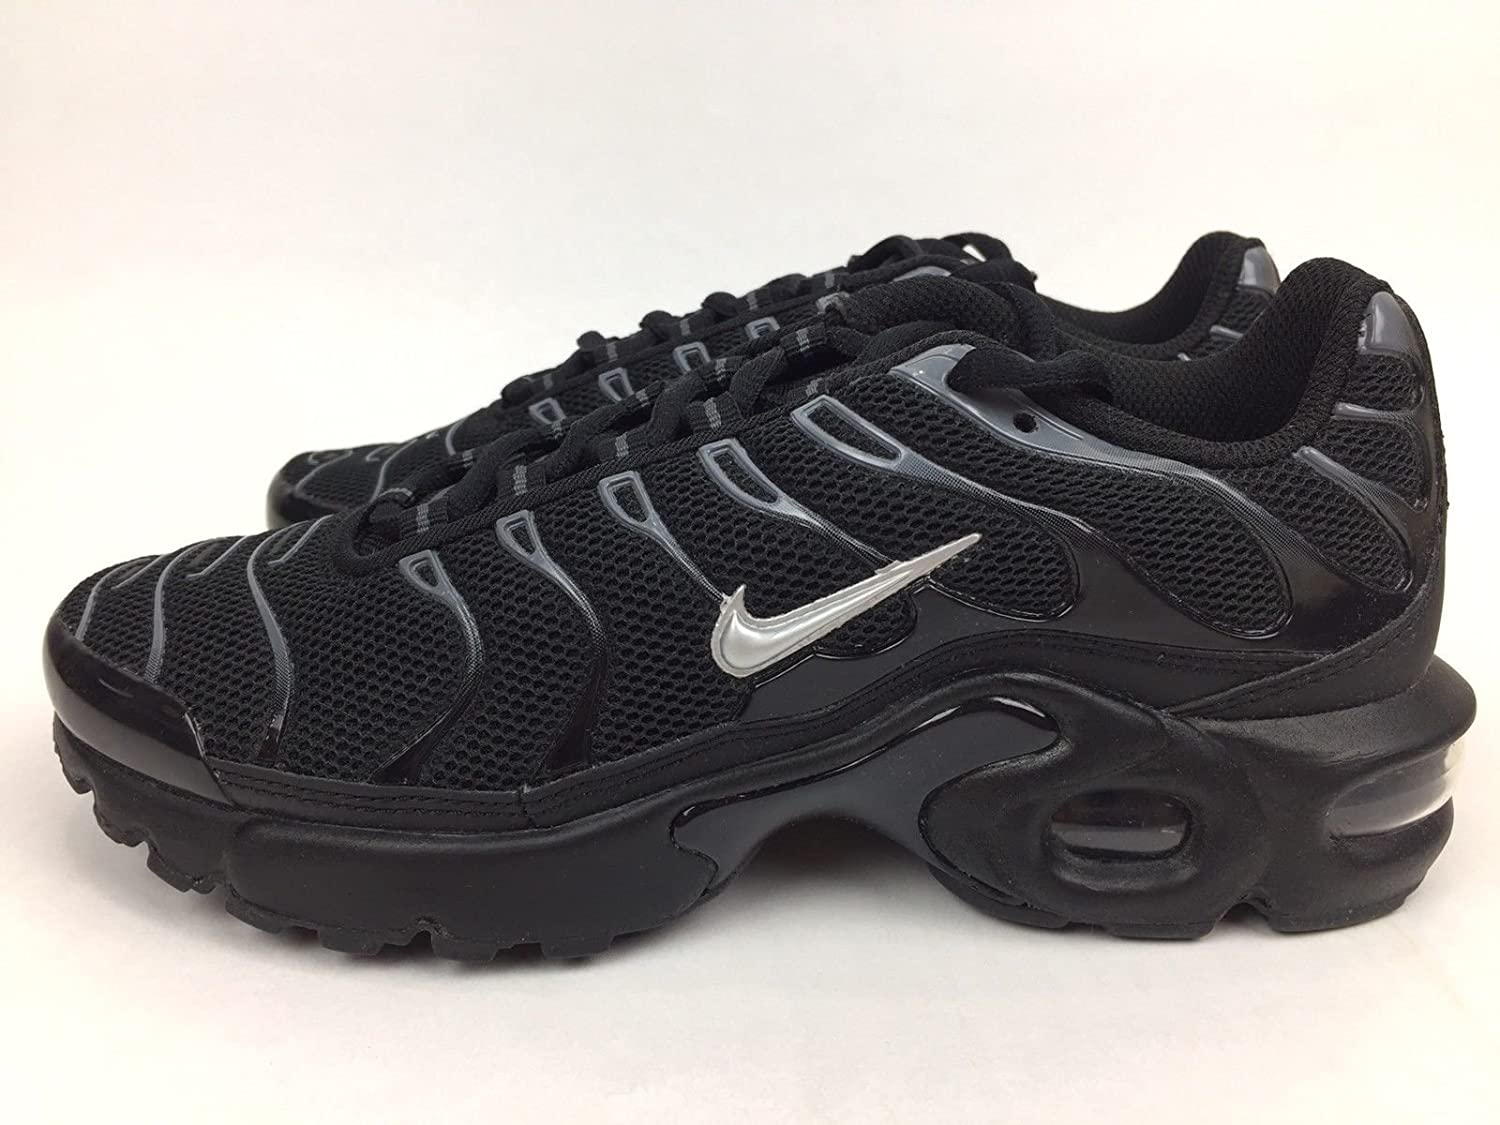 competitive price 04a90 0d46f Amazon.com | Nike Air Max Plus TN (GS) Youth Sneaker Black ...